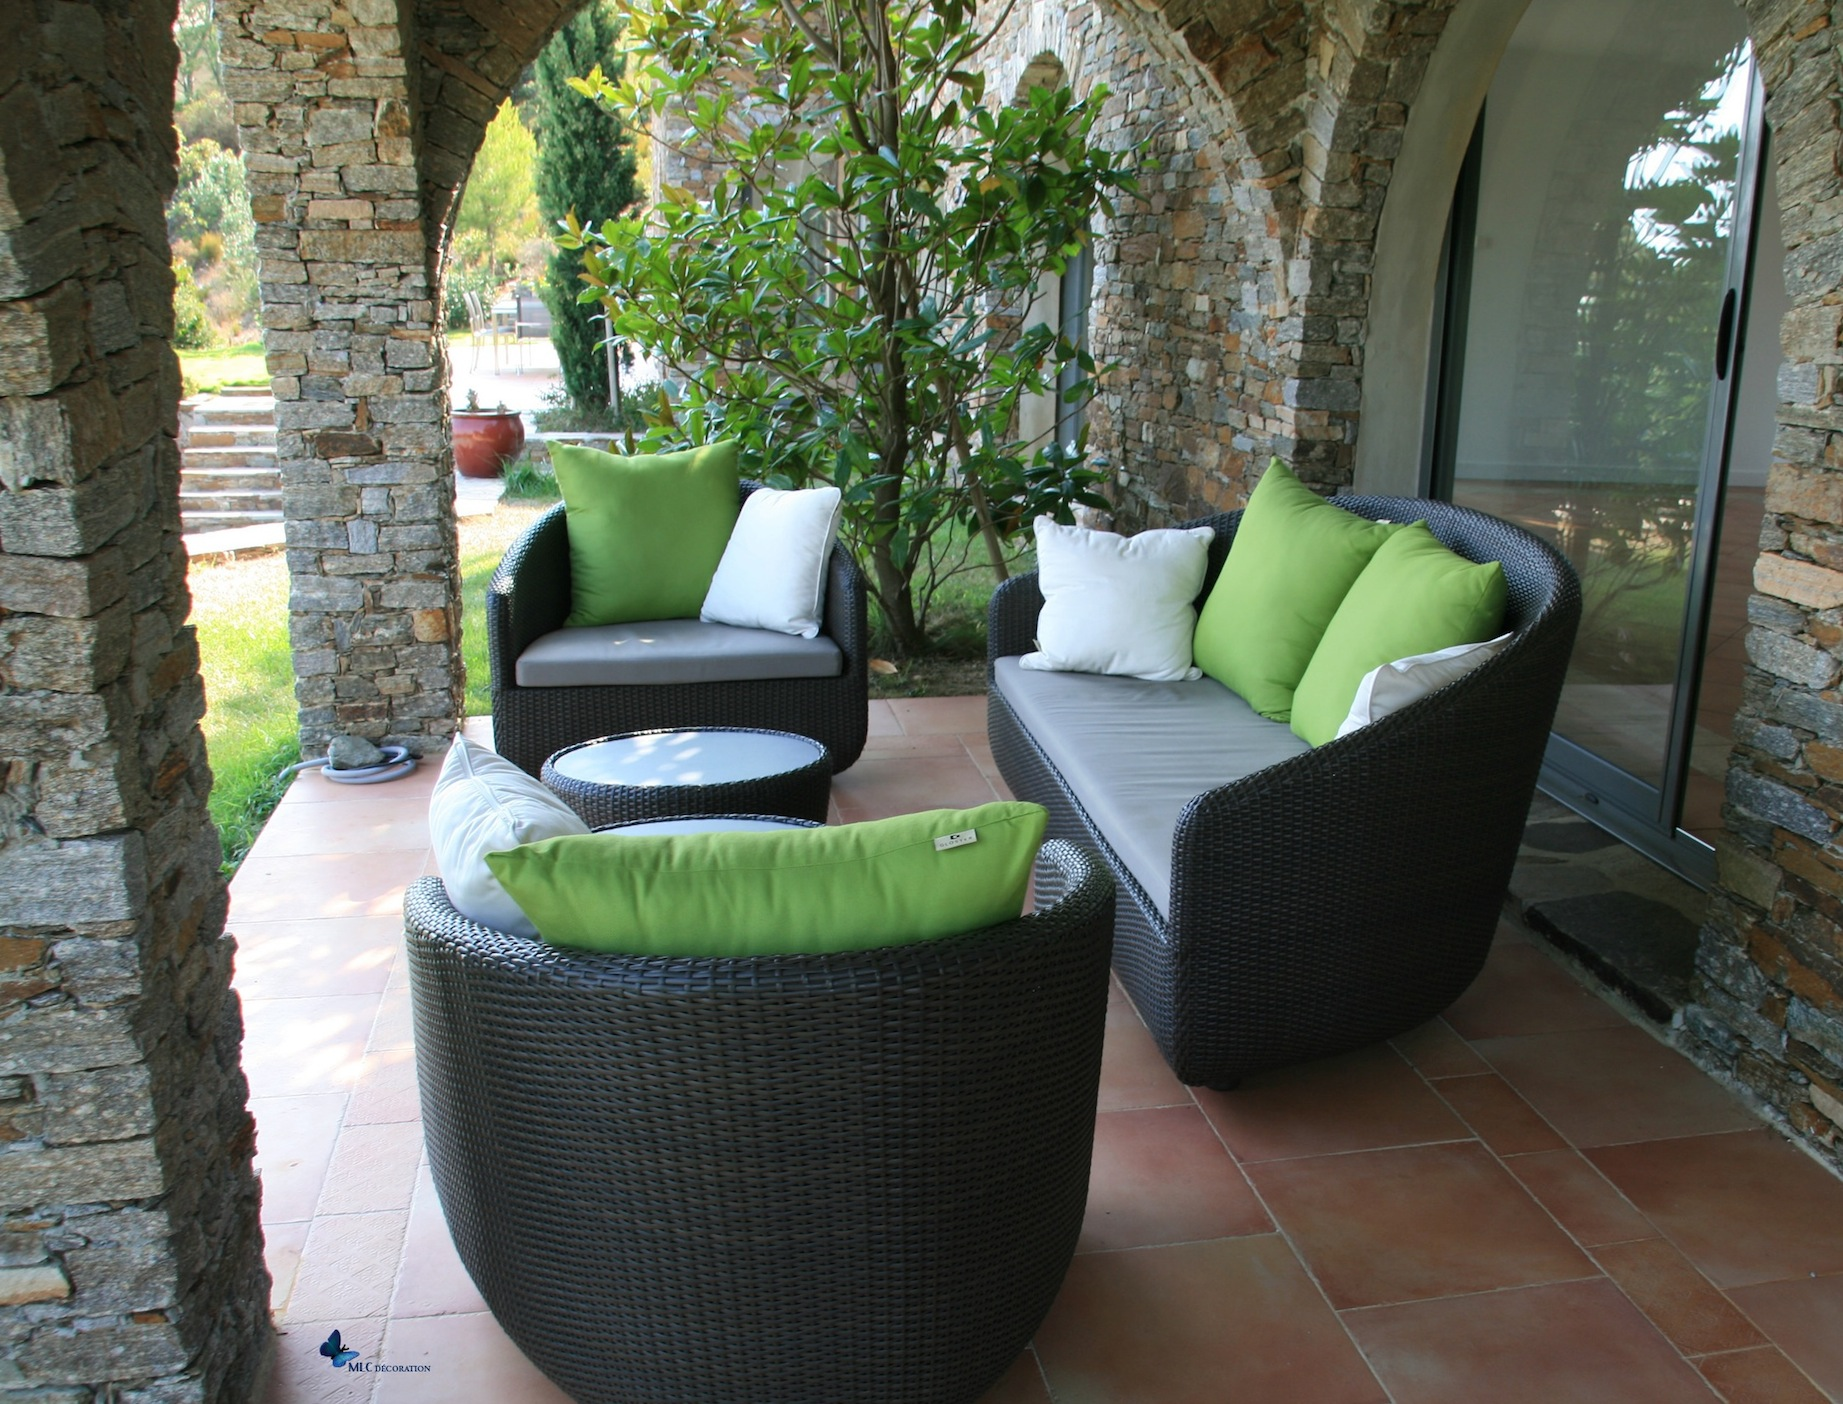 Canap ext rieur design archives le blog d co de mlc for Deco jardin design